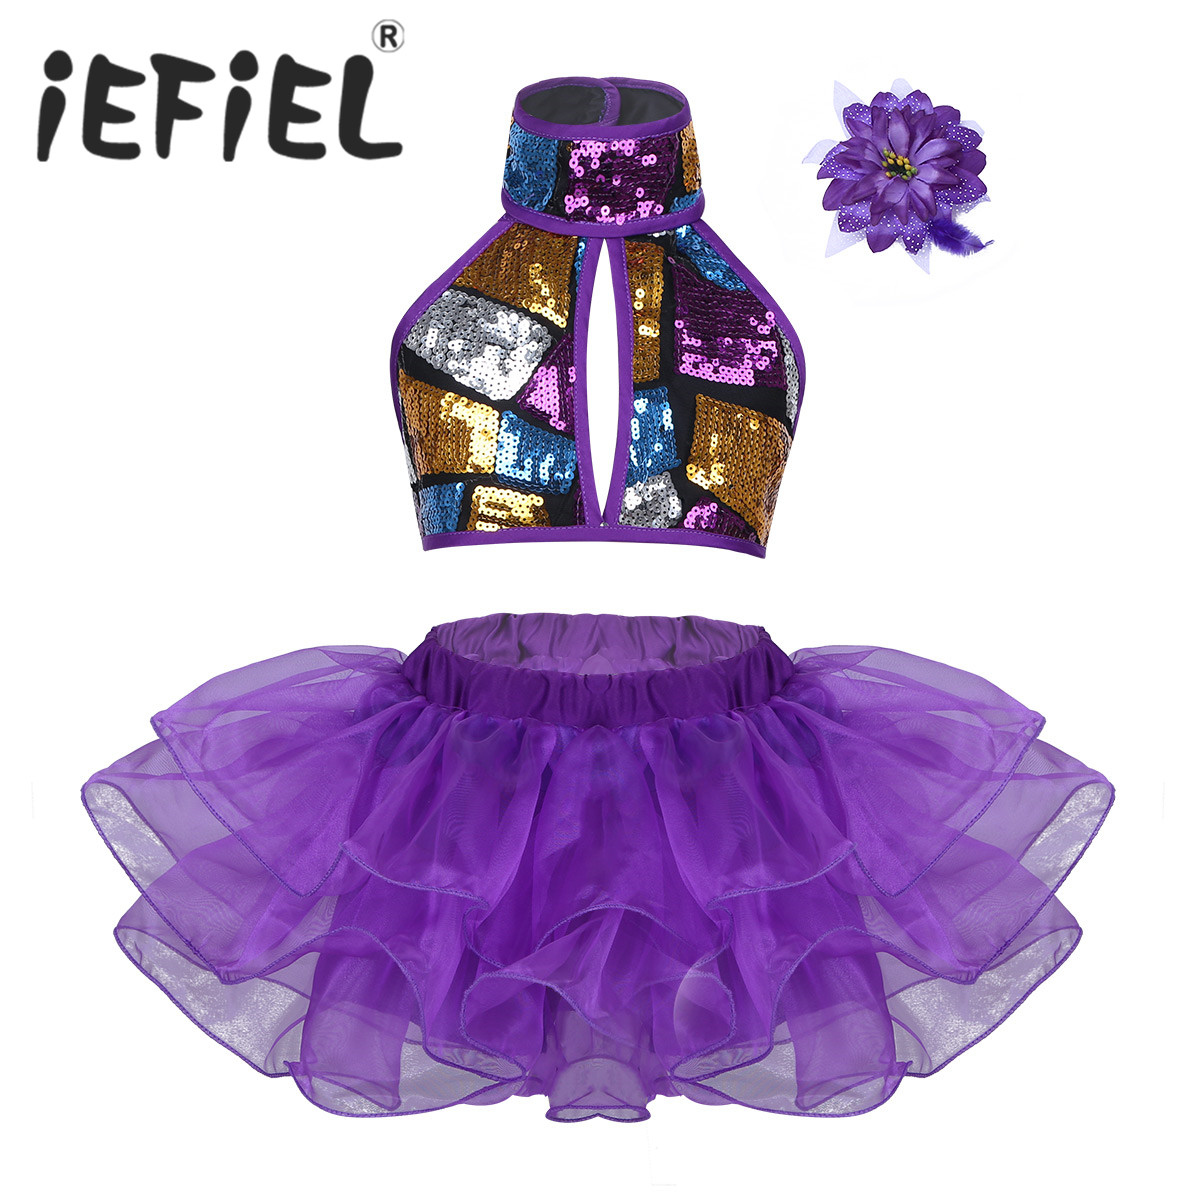 Fashion Girls Sequins Dance Costume Halter Crop Top with Tutu Dress Flower Hair Clip Set for Ballet Jazz Dance Stage Performance